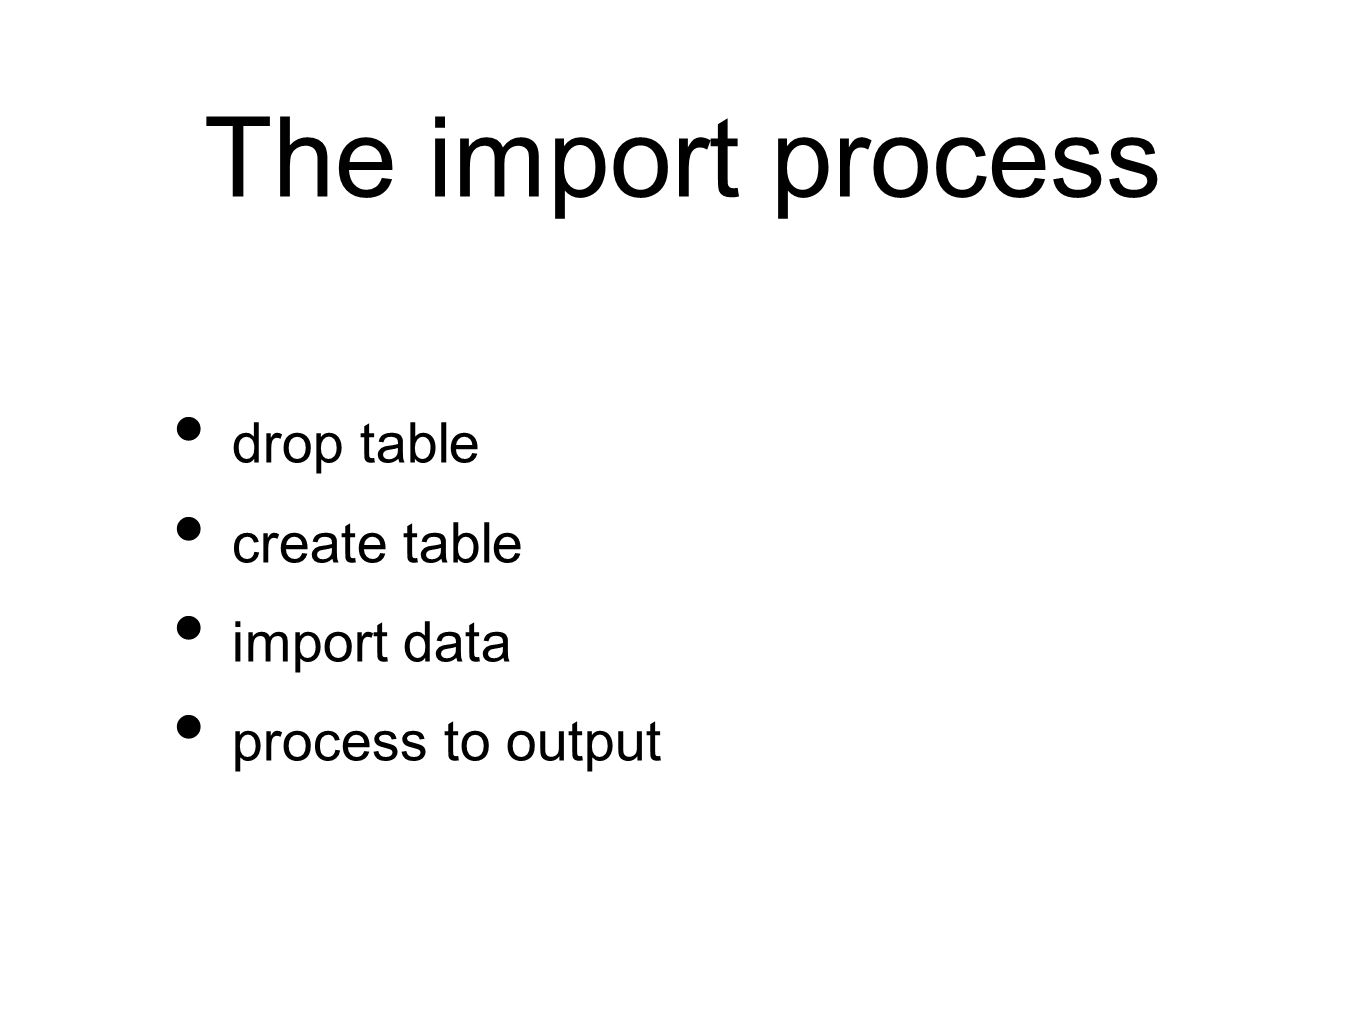 The import process drop table create table import data process to output